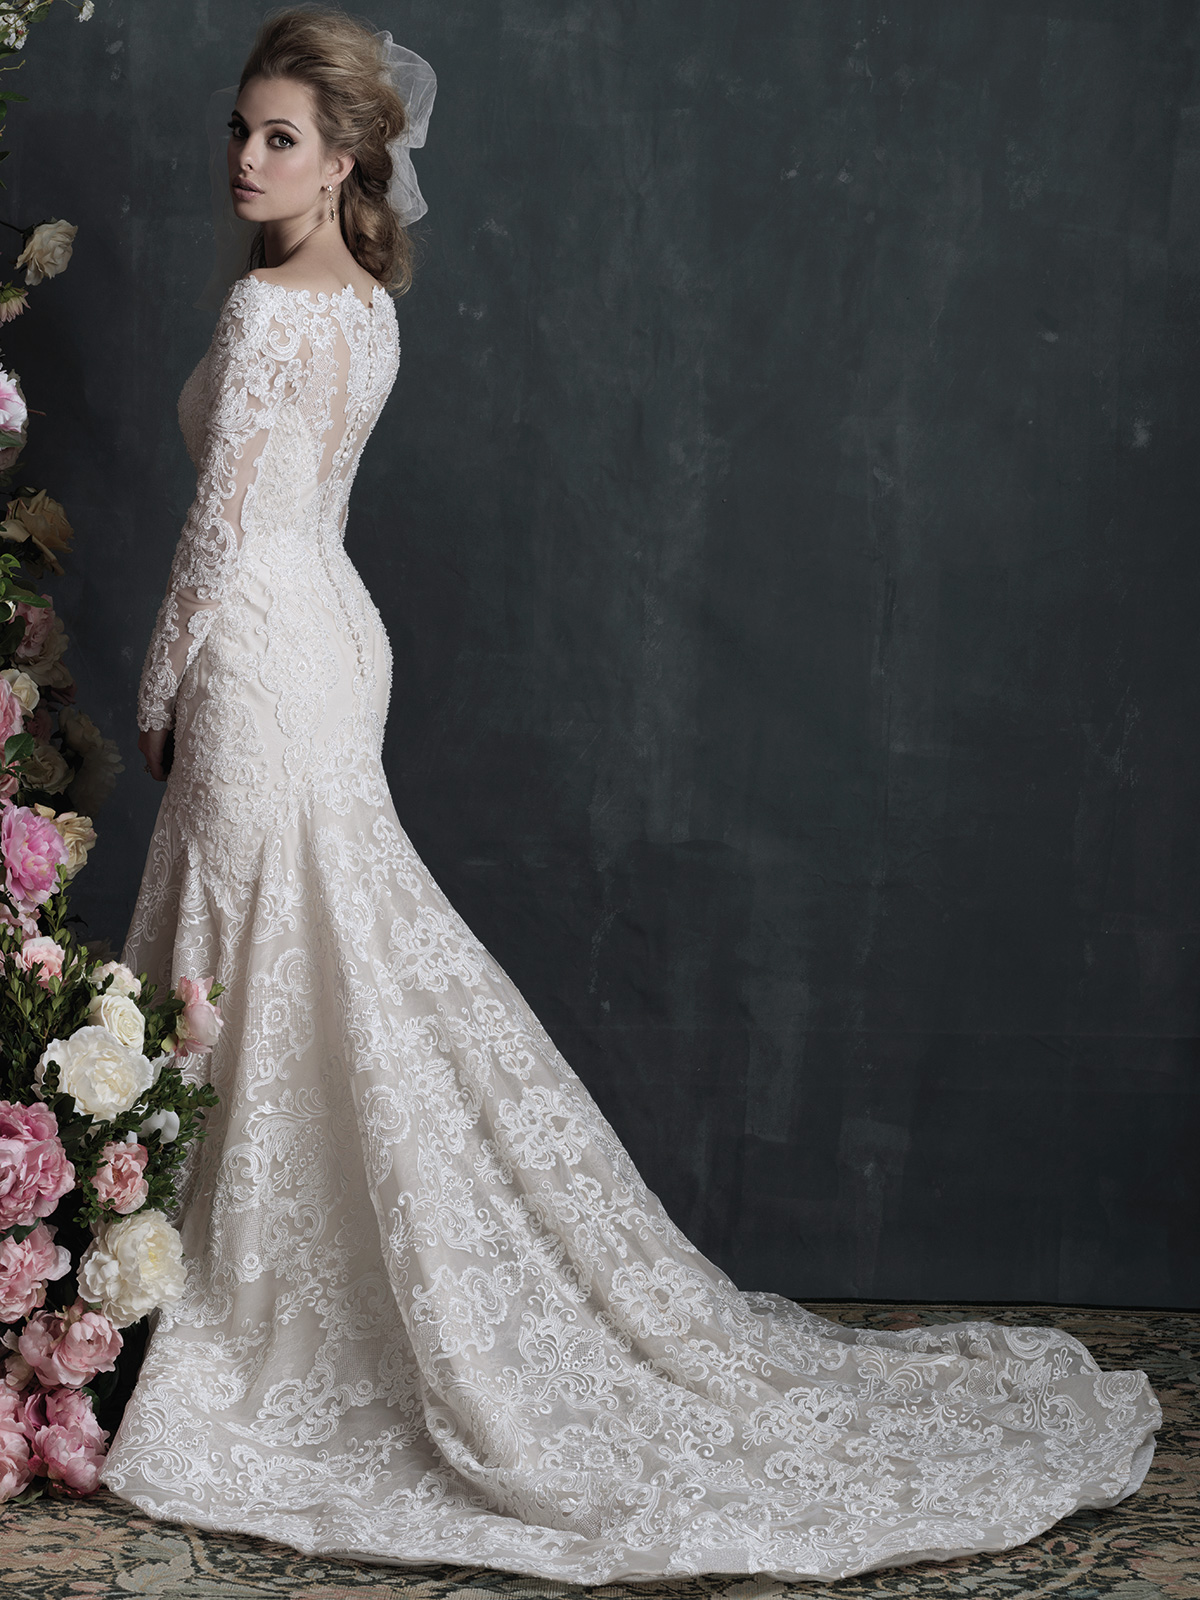 Allure bridals couture c406 long sleeves wedding dress for Allure long sleeve wedding dress